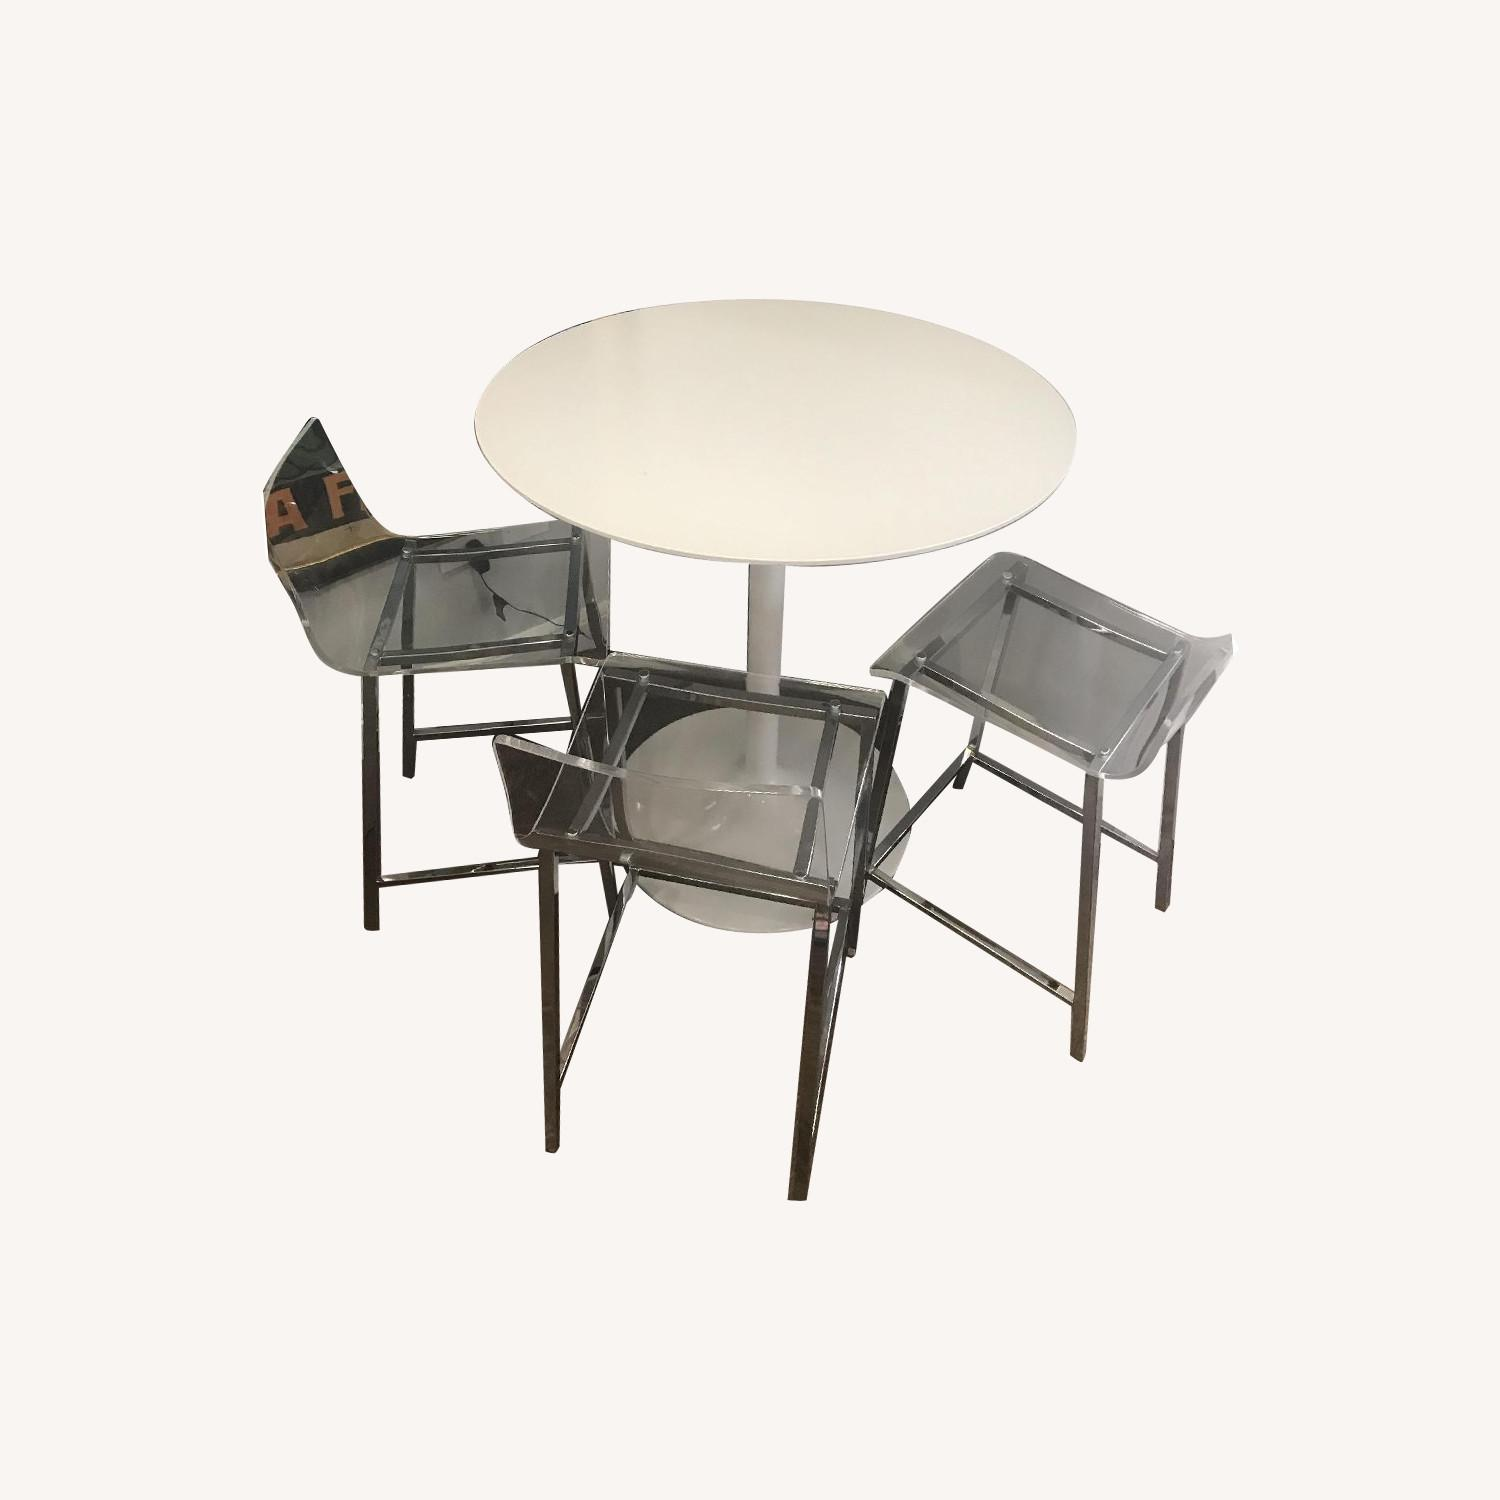 White Round Bar Table w/ 3 Clear Chairs - image-0